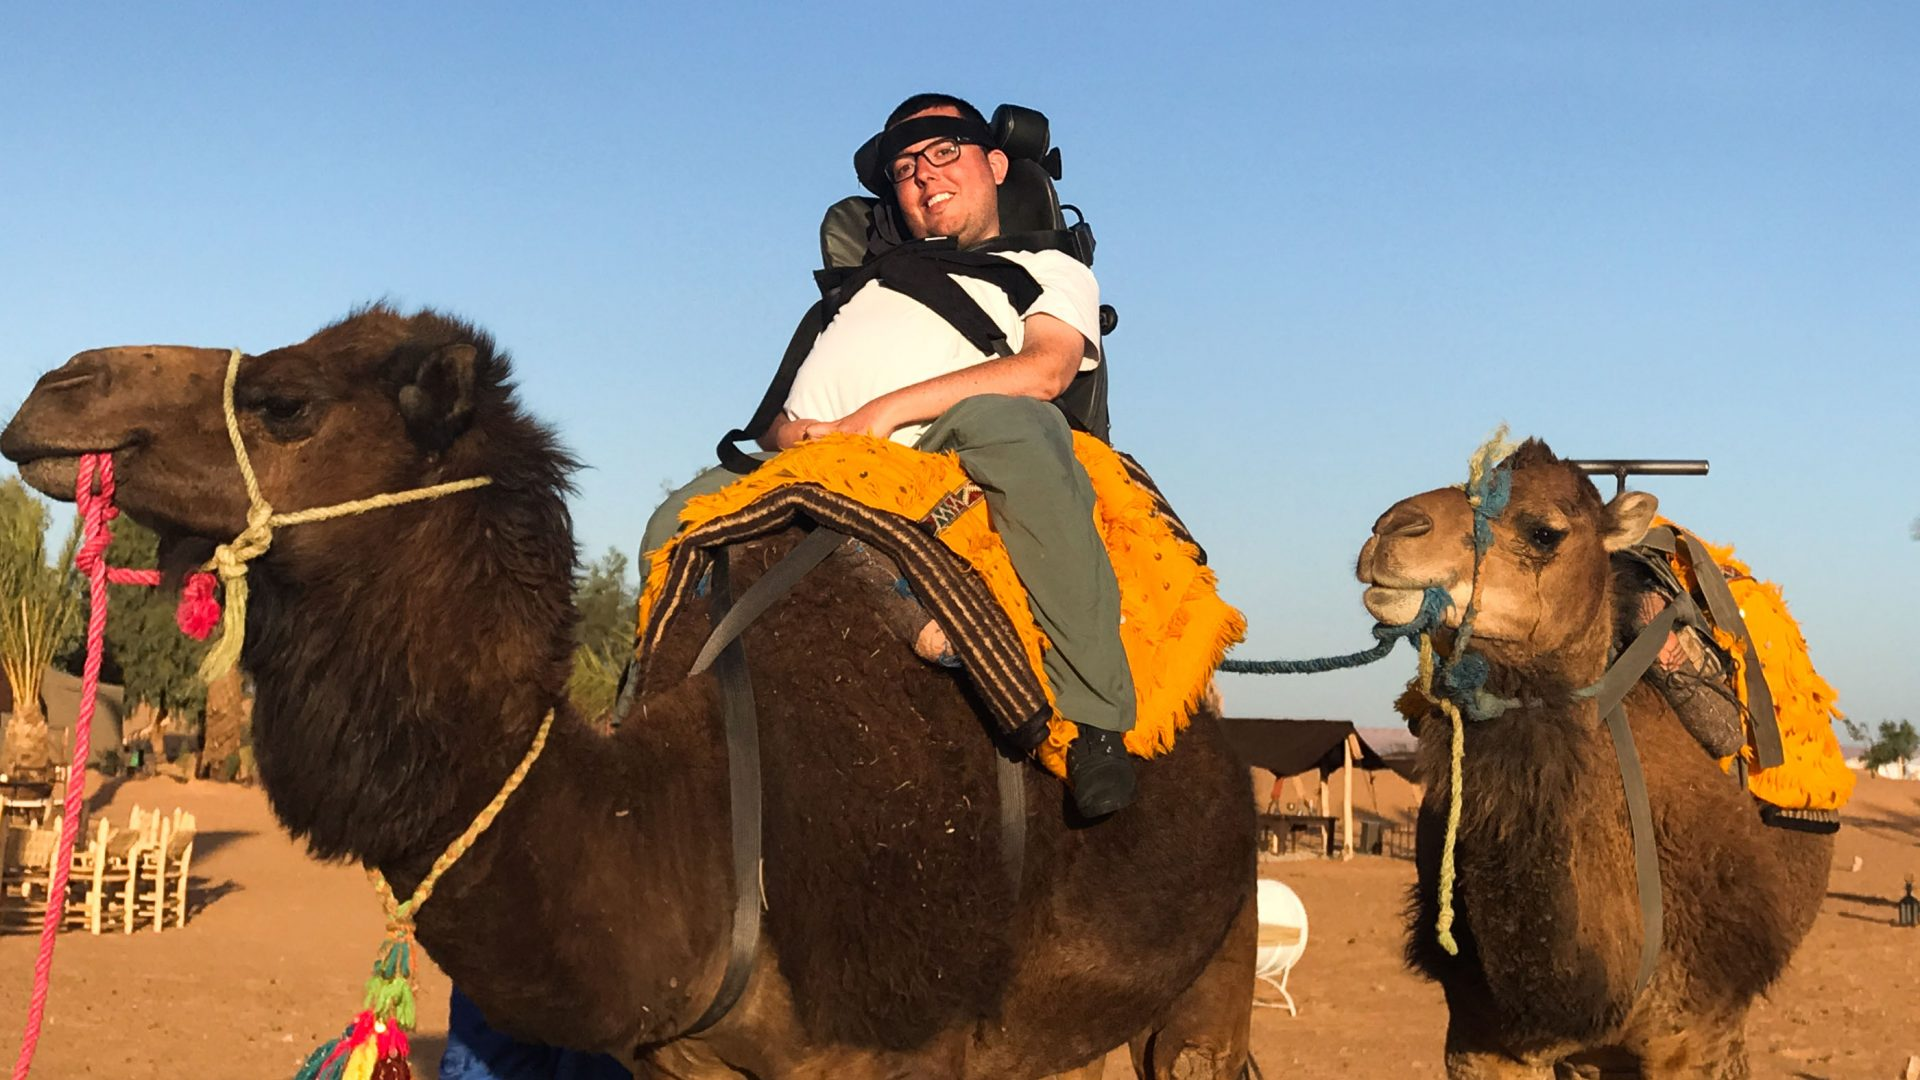 Cory Lee rides a camel during his travels.